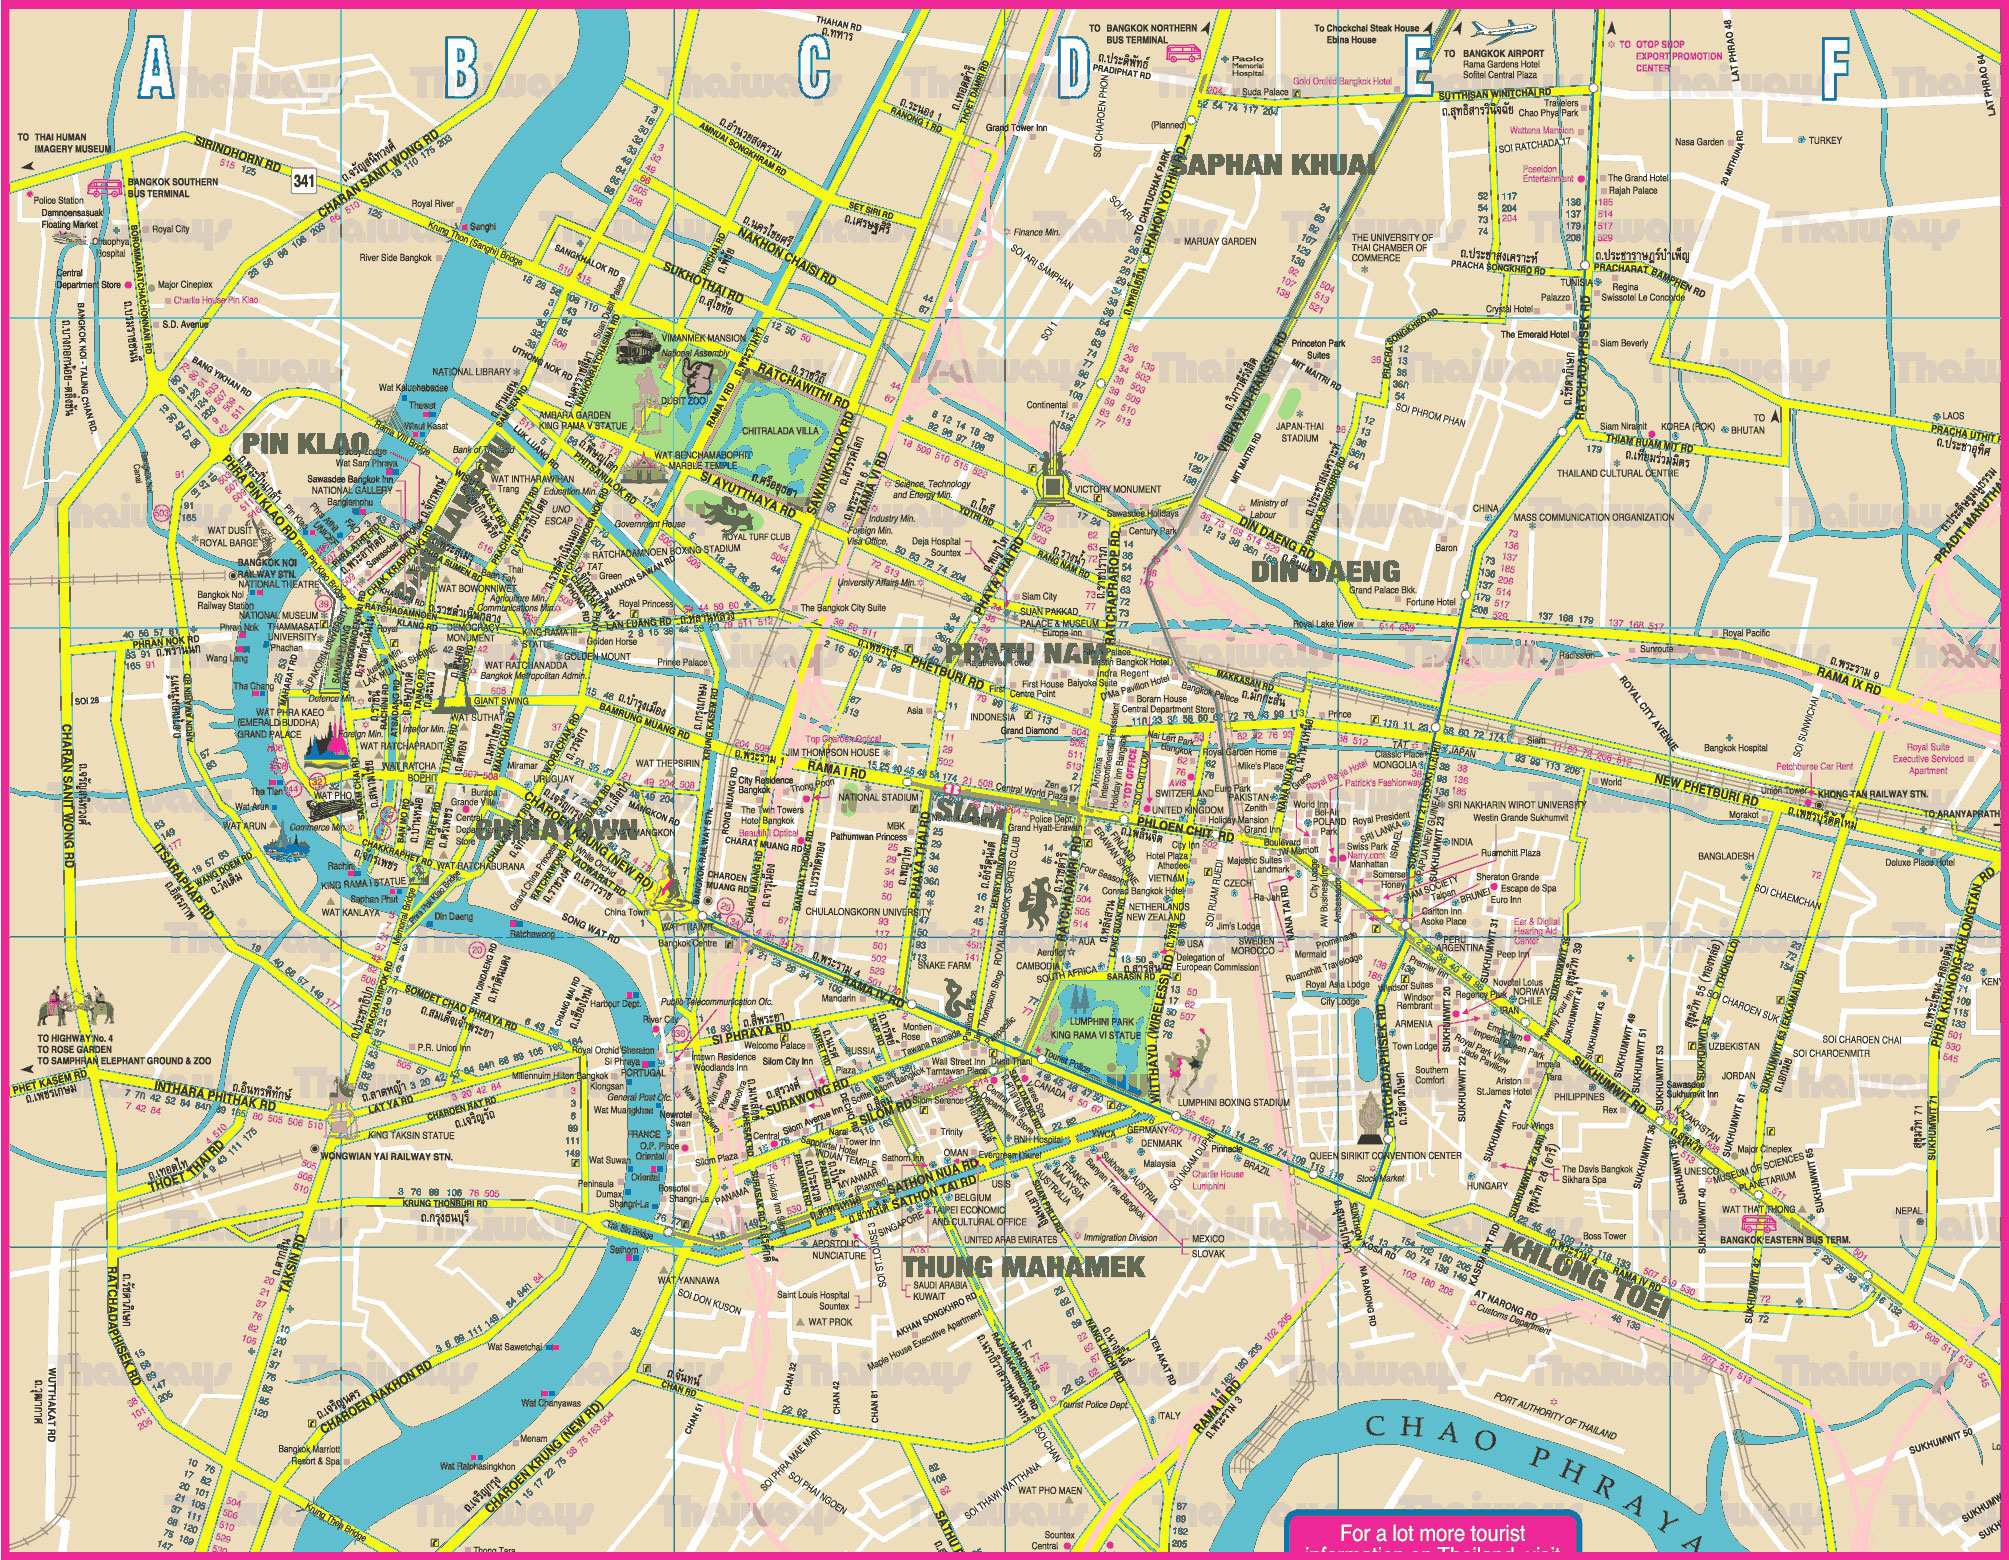 Bangkok City Map Large Bangkok Maps for Free Download and Print | High Resolution